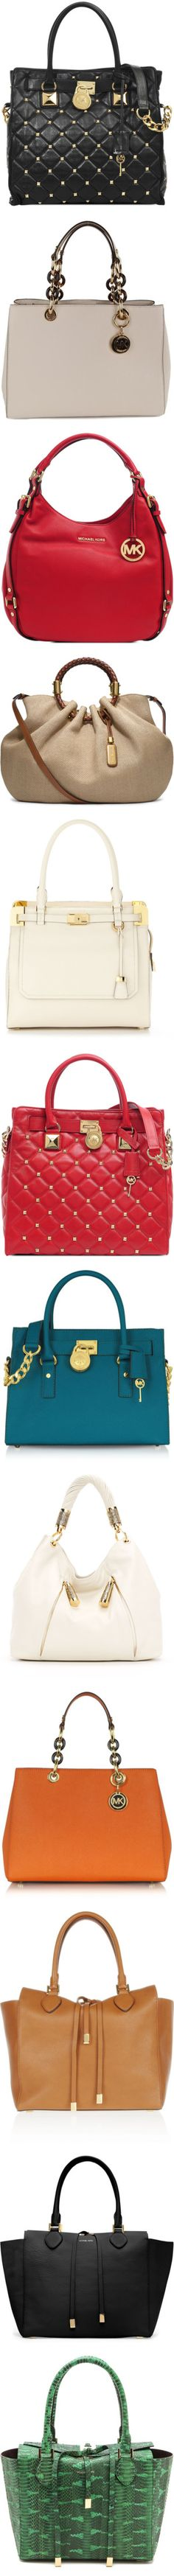 """""""Kors"""" by mzmamie on Polyvore If you click on the pic you can see the whole collection"""